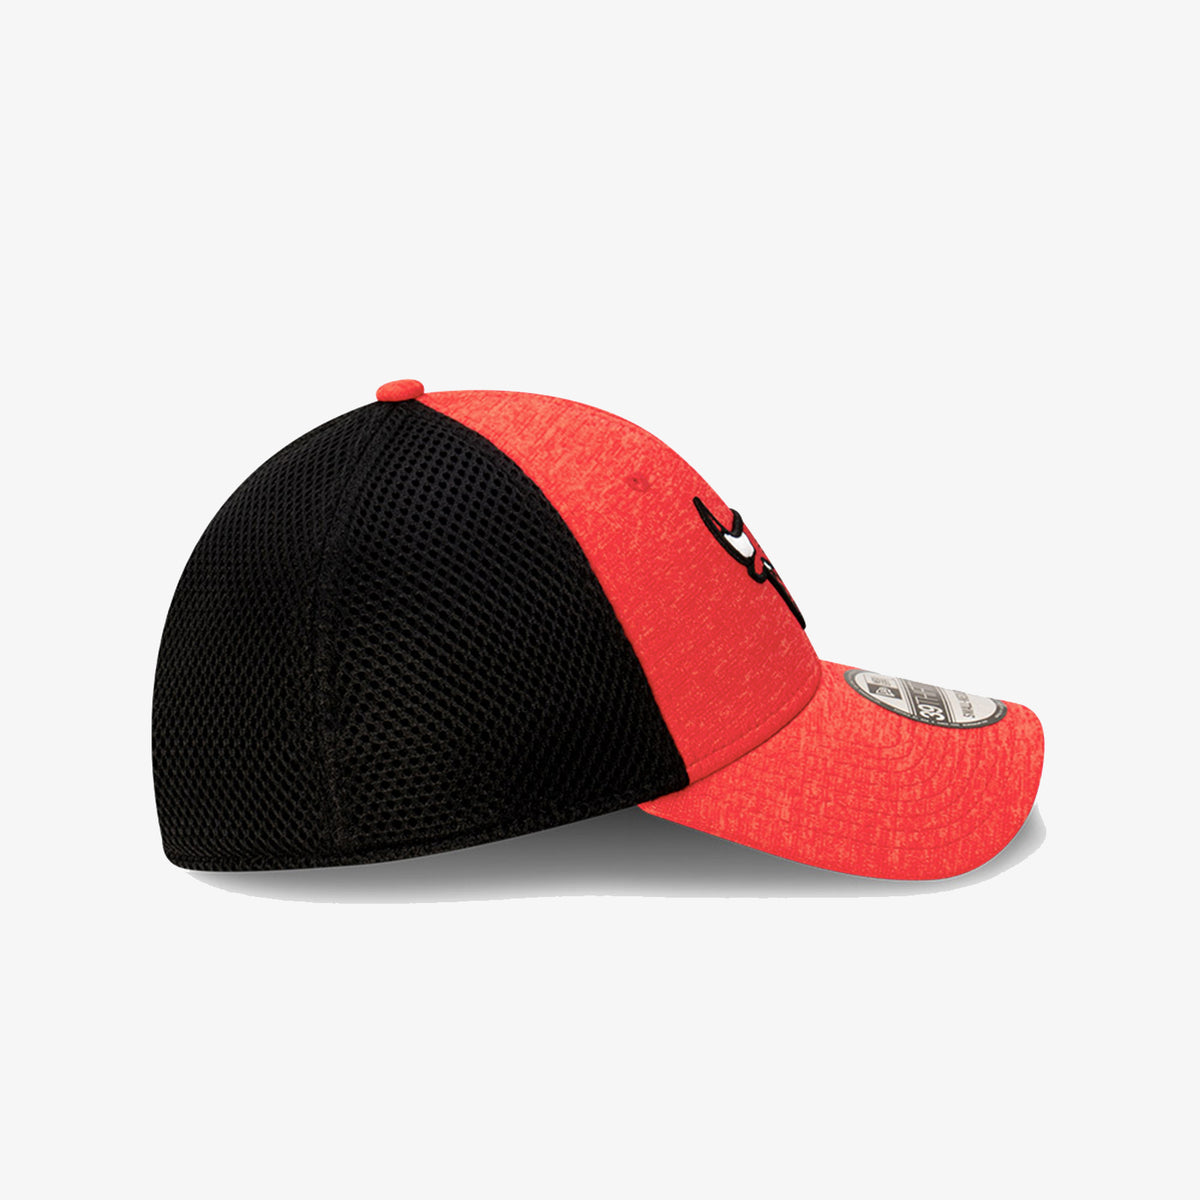 Chicago Bulls 3930 Shadow Spacer Cap - Red/Black